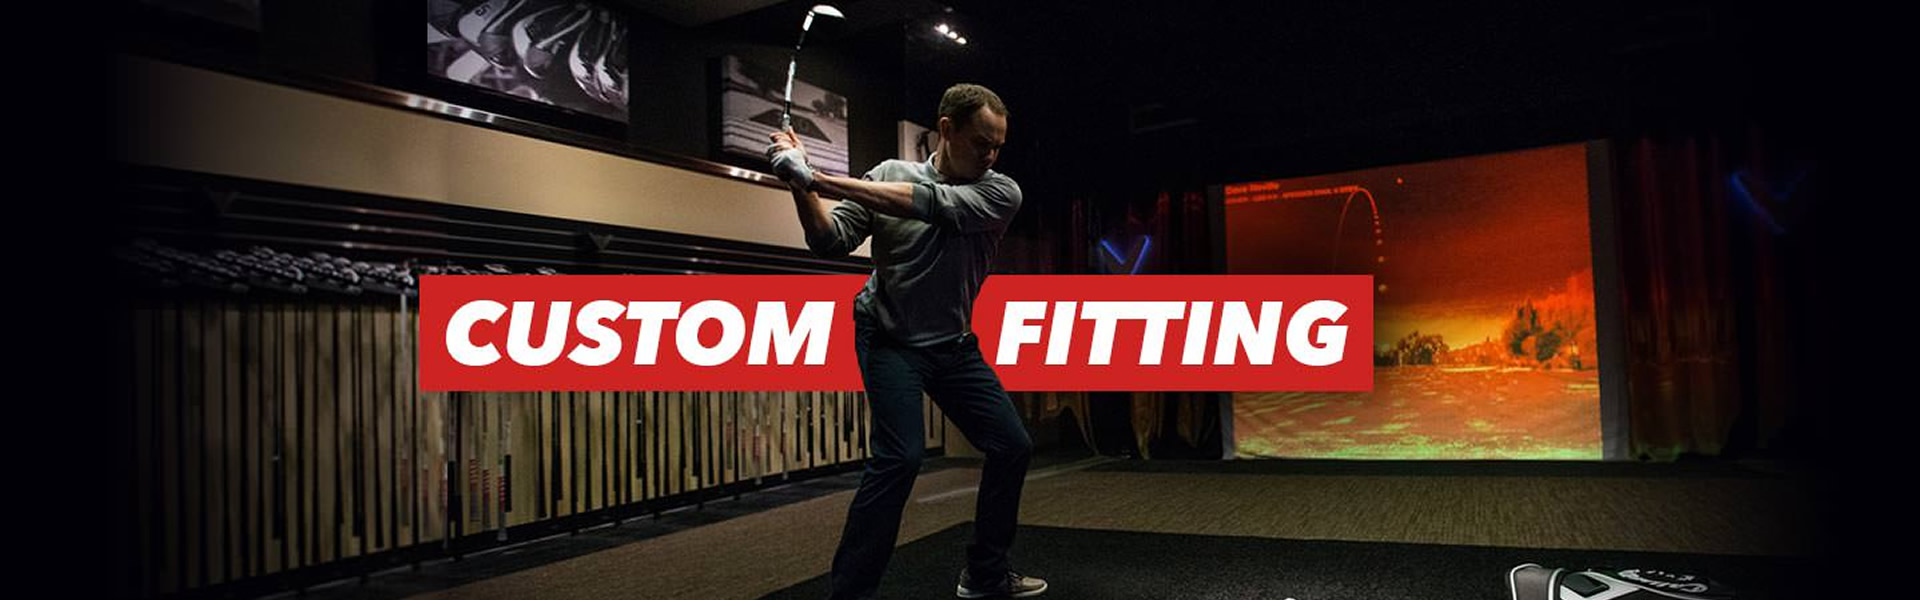 brighton custom golf club fitting